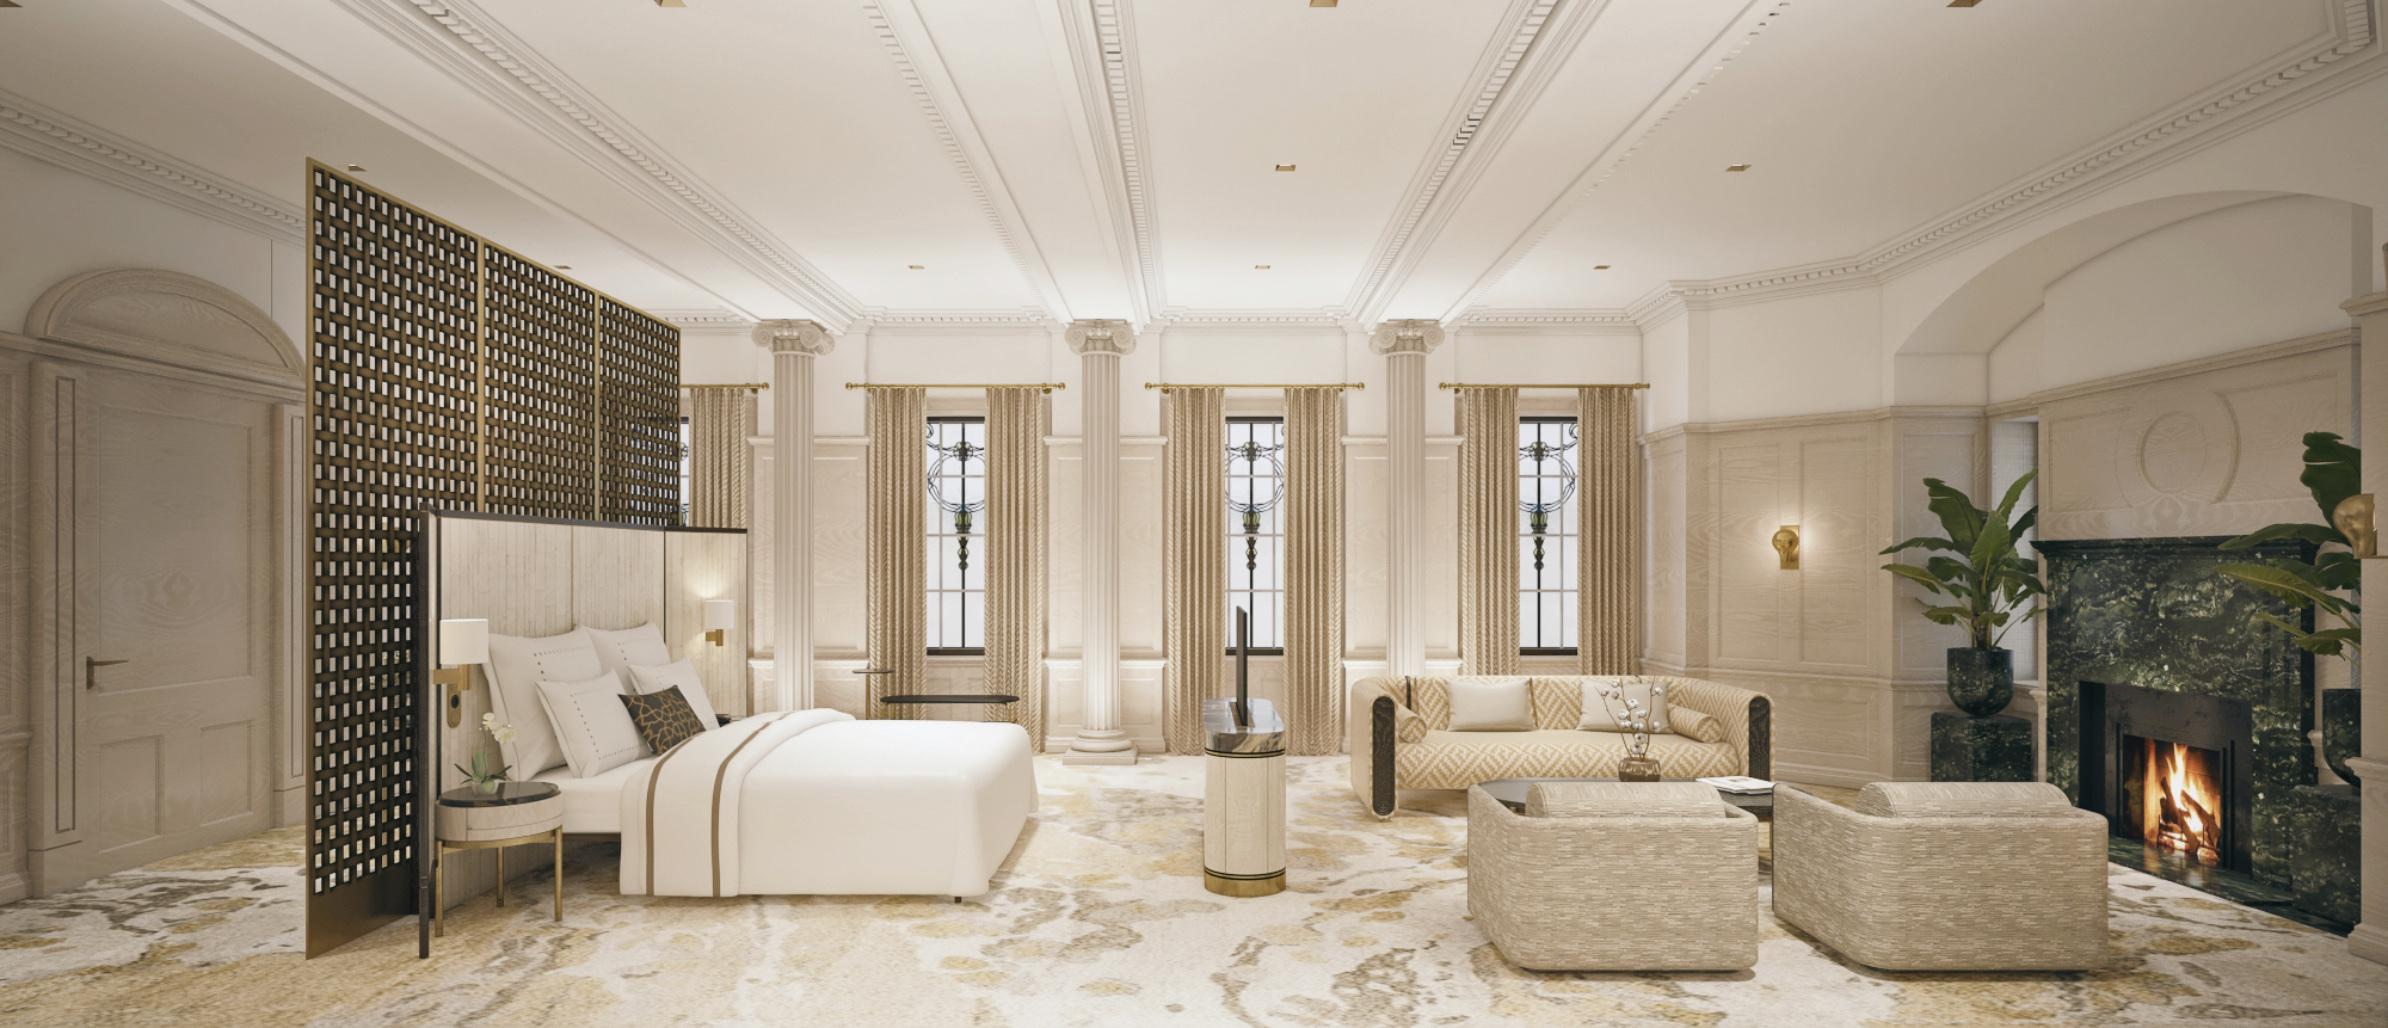 A Touch of Luxury – Stock Exchange Hotel to open this year